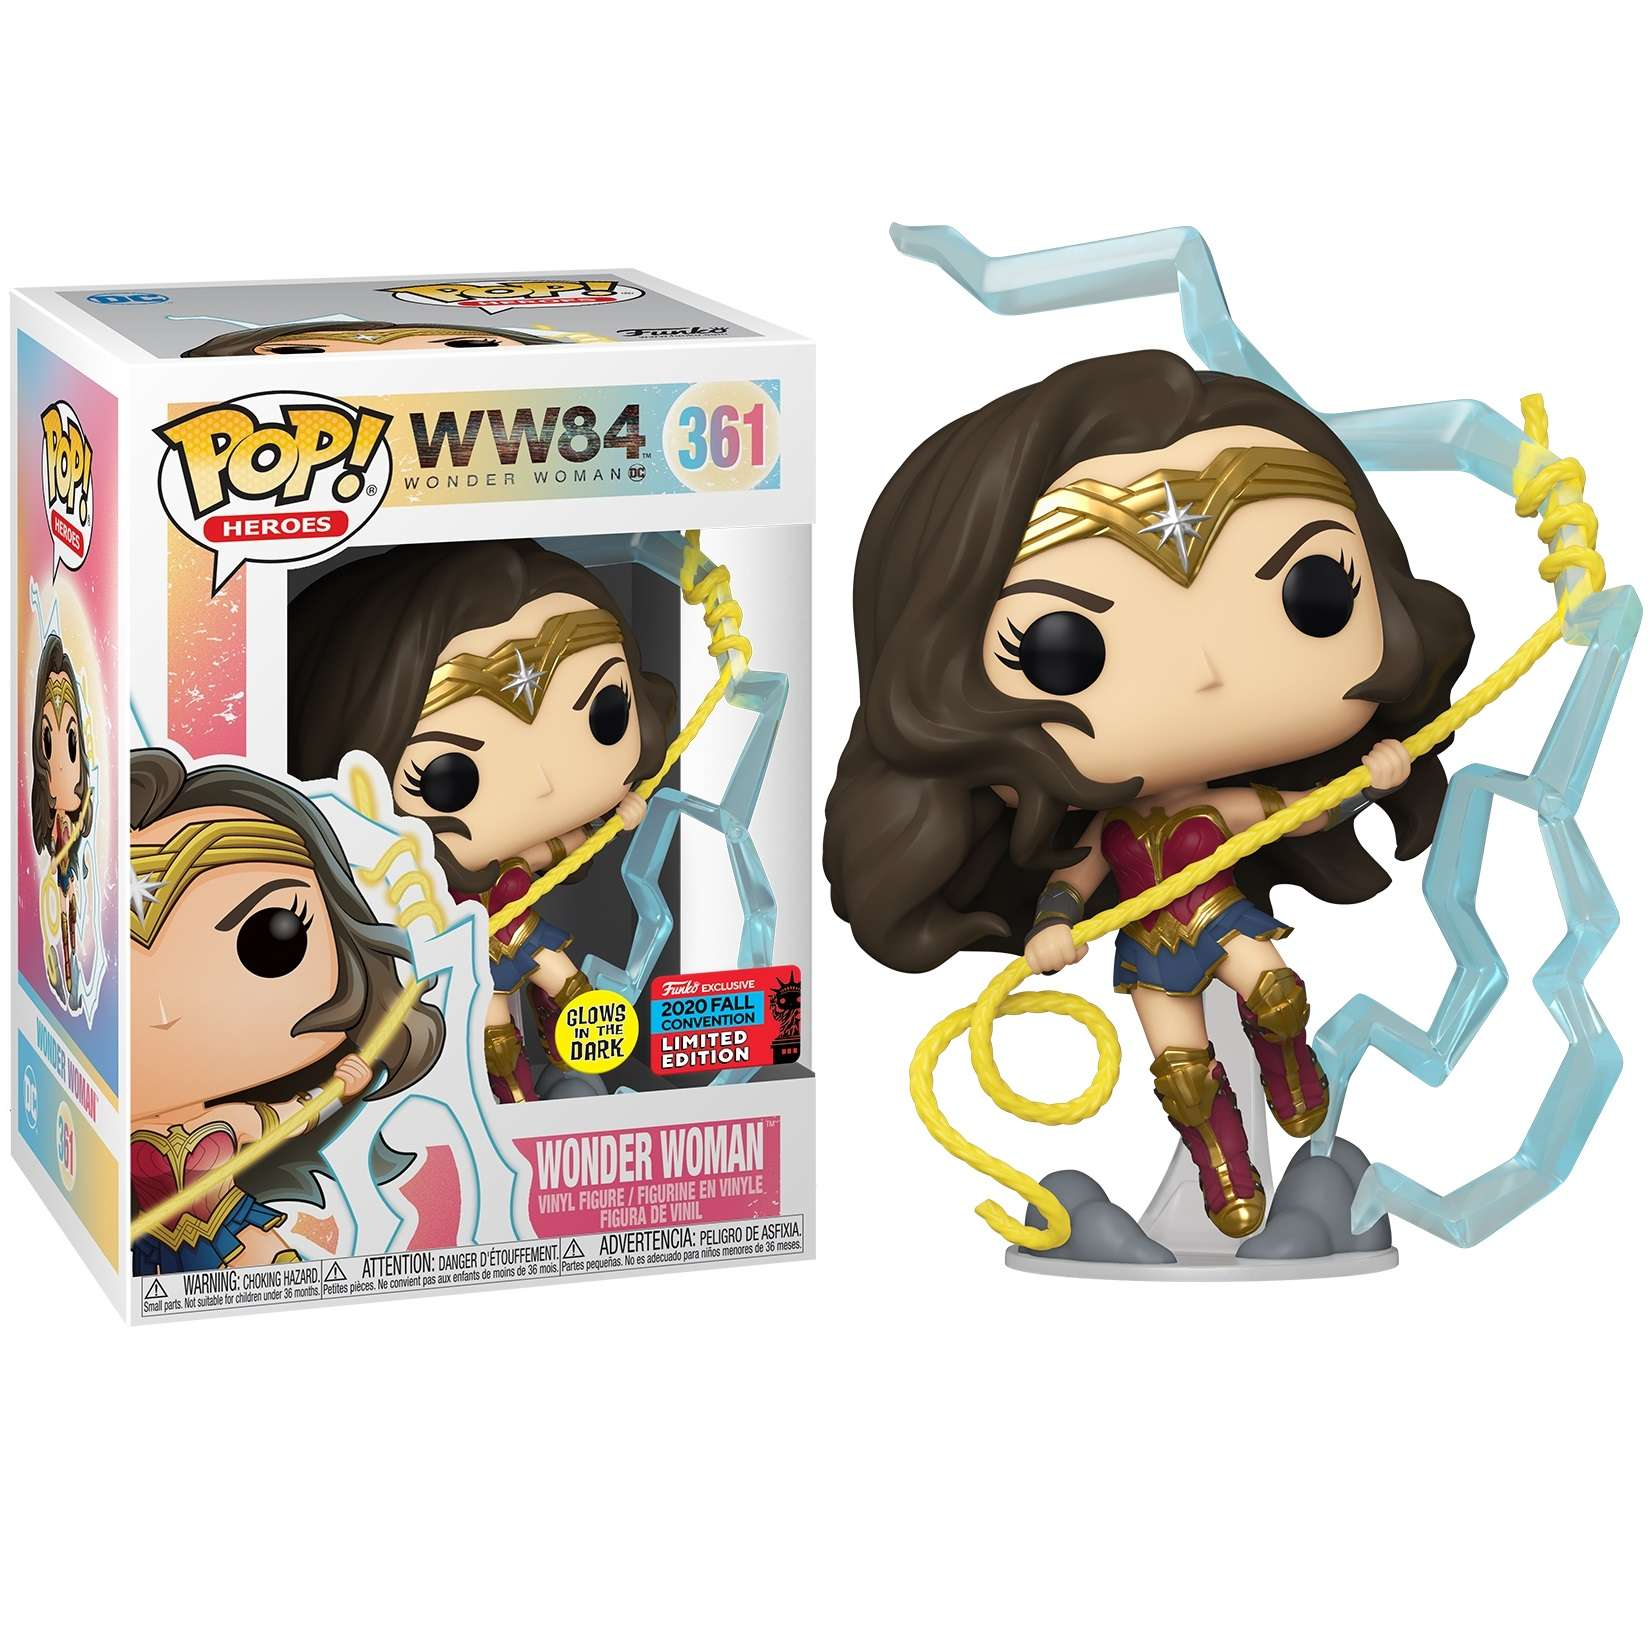 POP!: Wonder Woman 1984 - Wonder Woman w/ Lightning (NYCC 2020) Photo